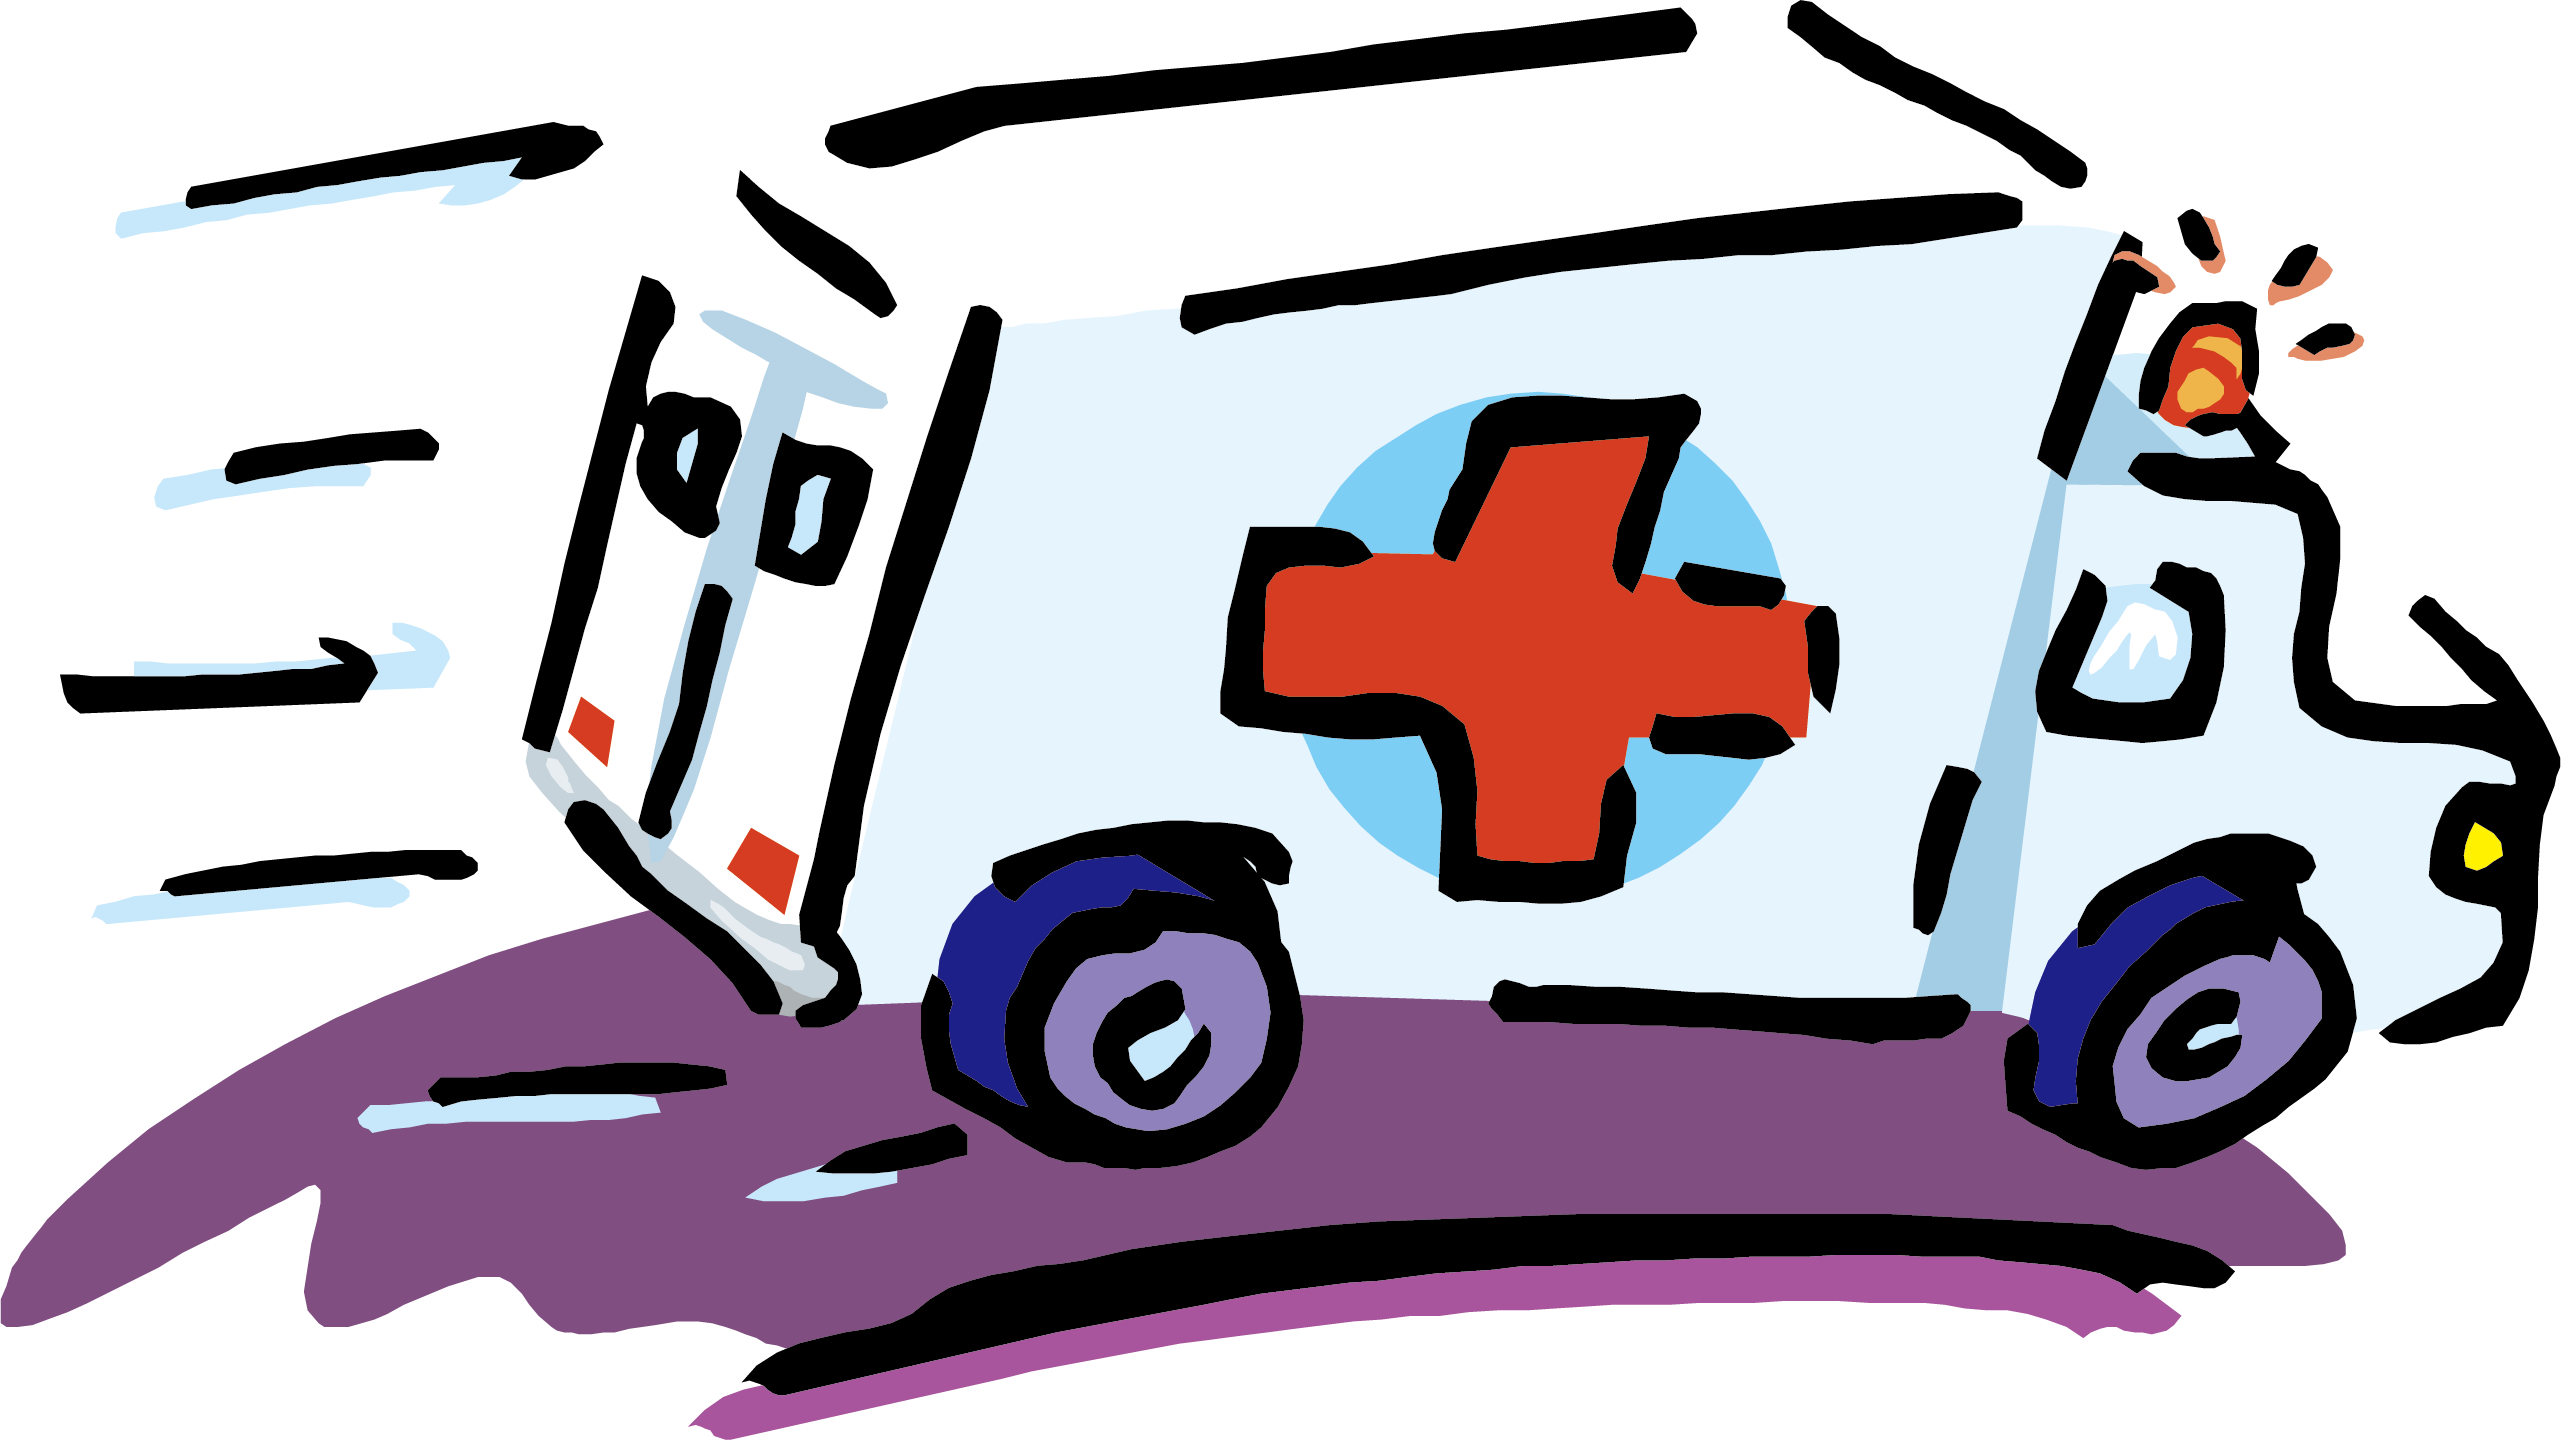 Engine clipart automotive technology. Ambulance first aid cartoon